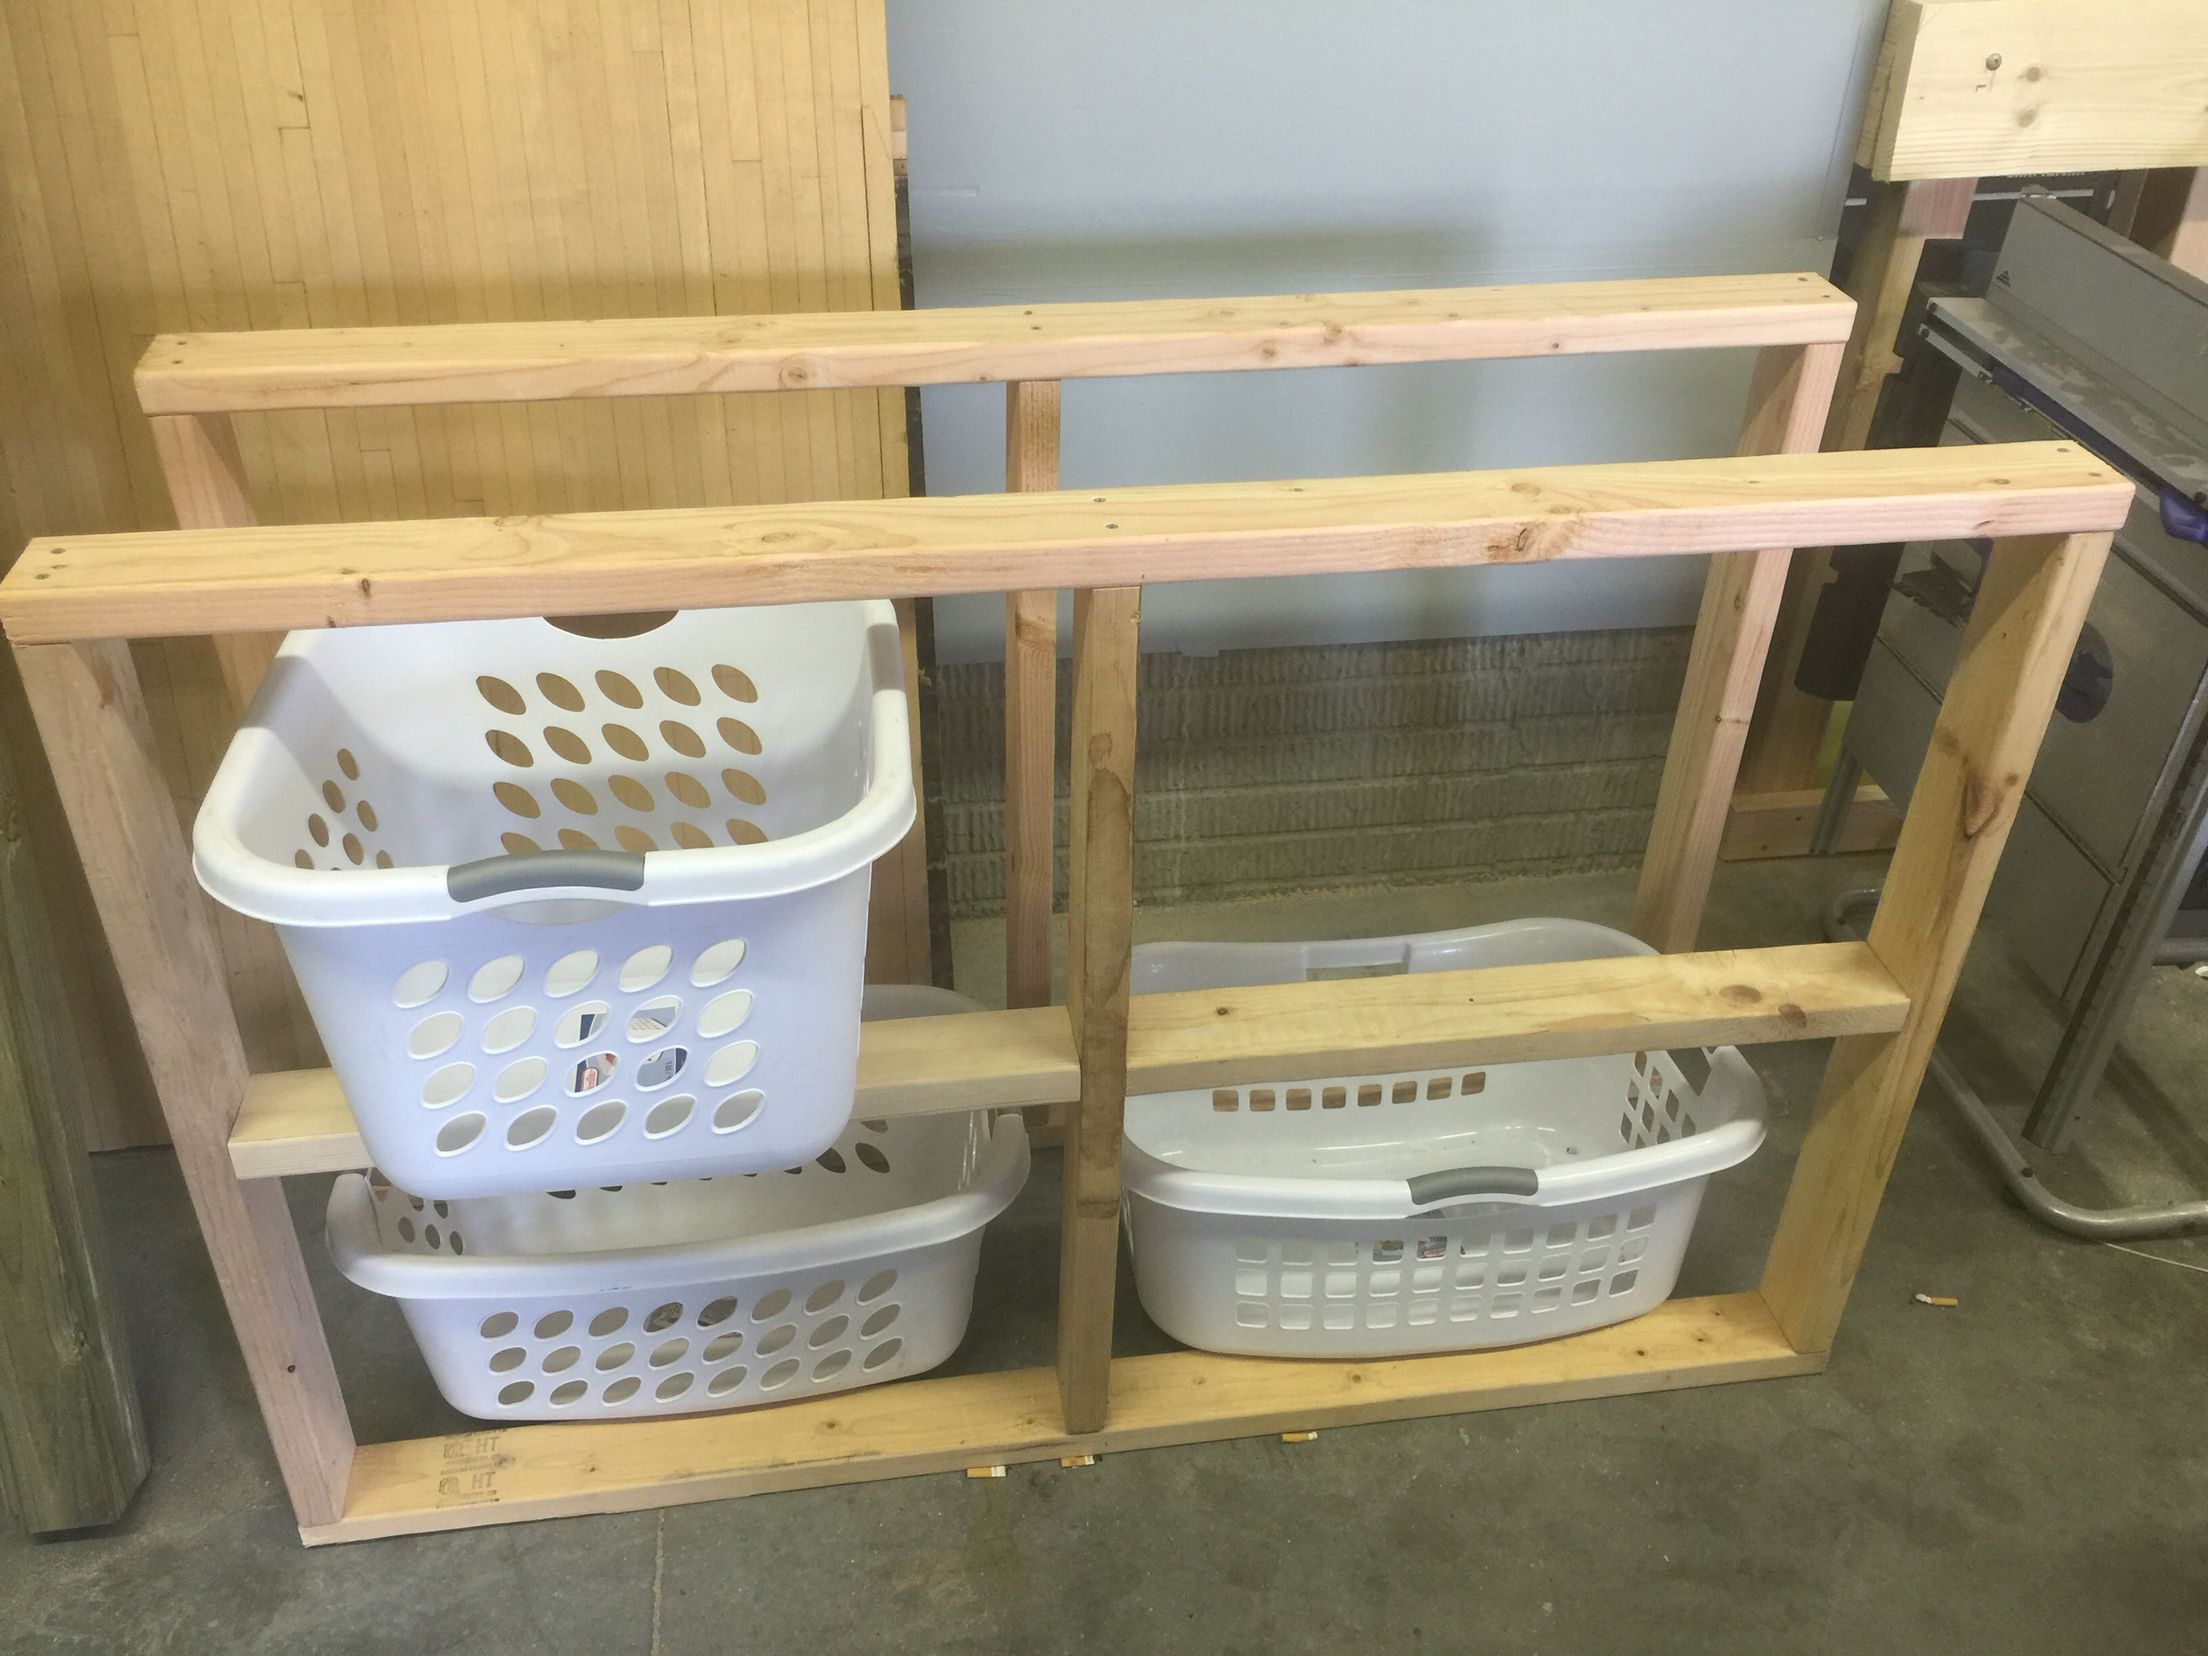 Simple 2x4 And Screw Laundry Room Organization Storage Baskets